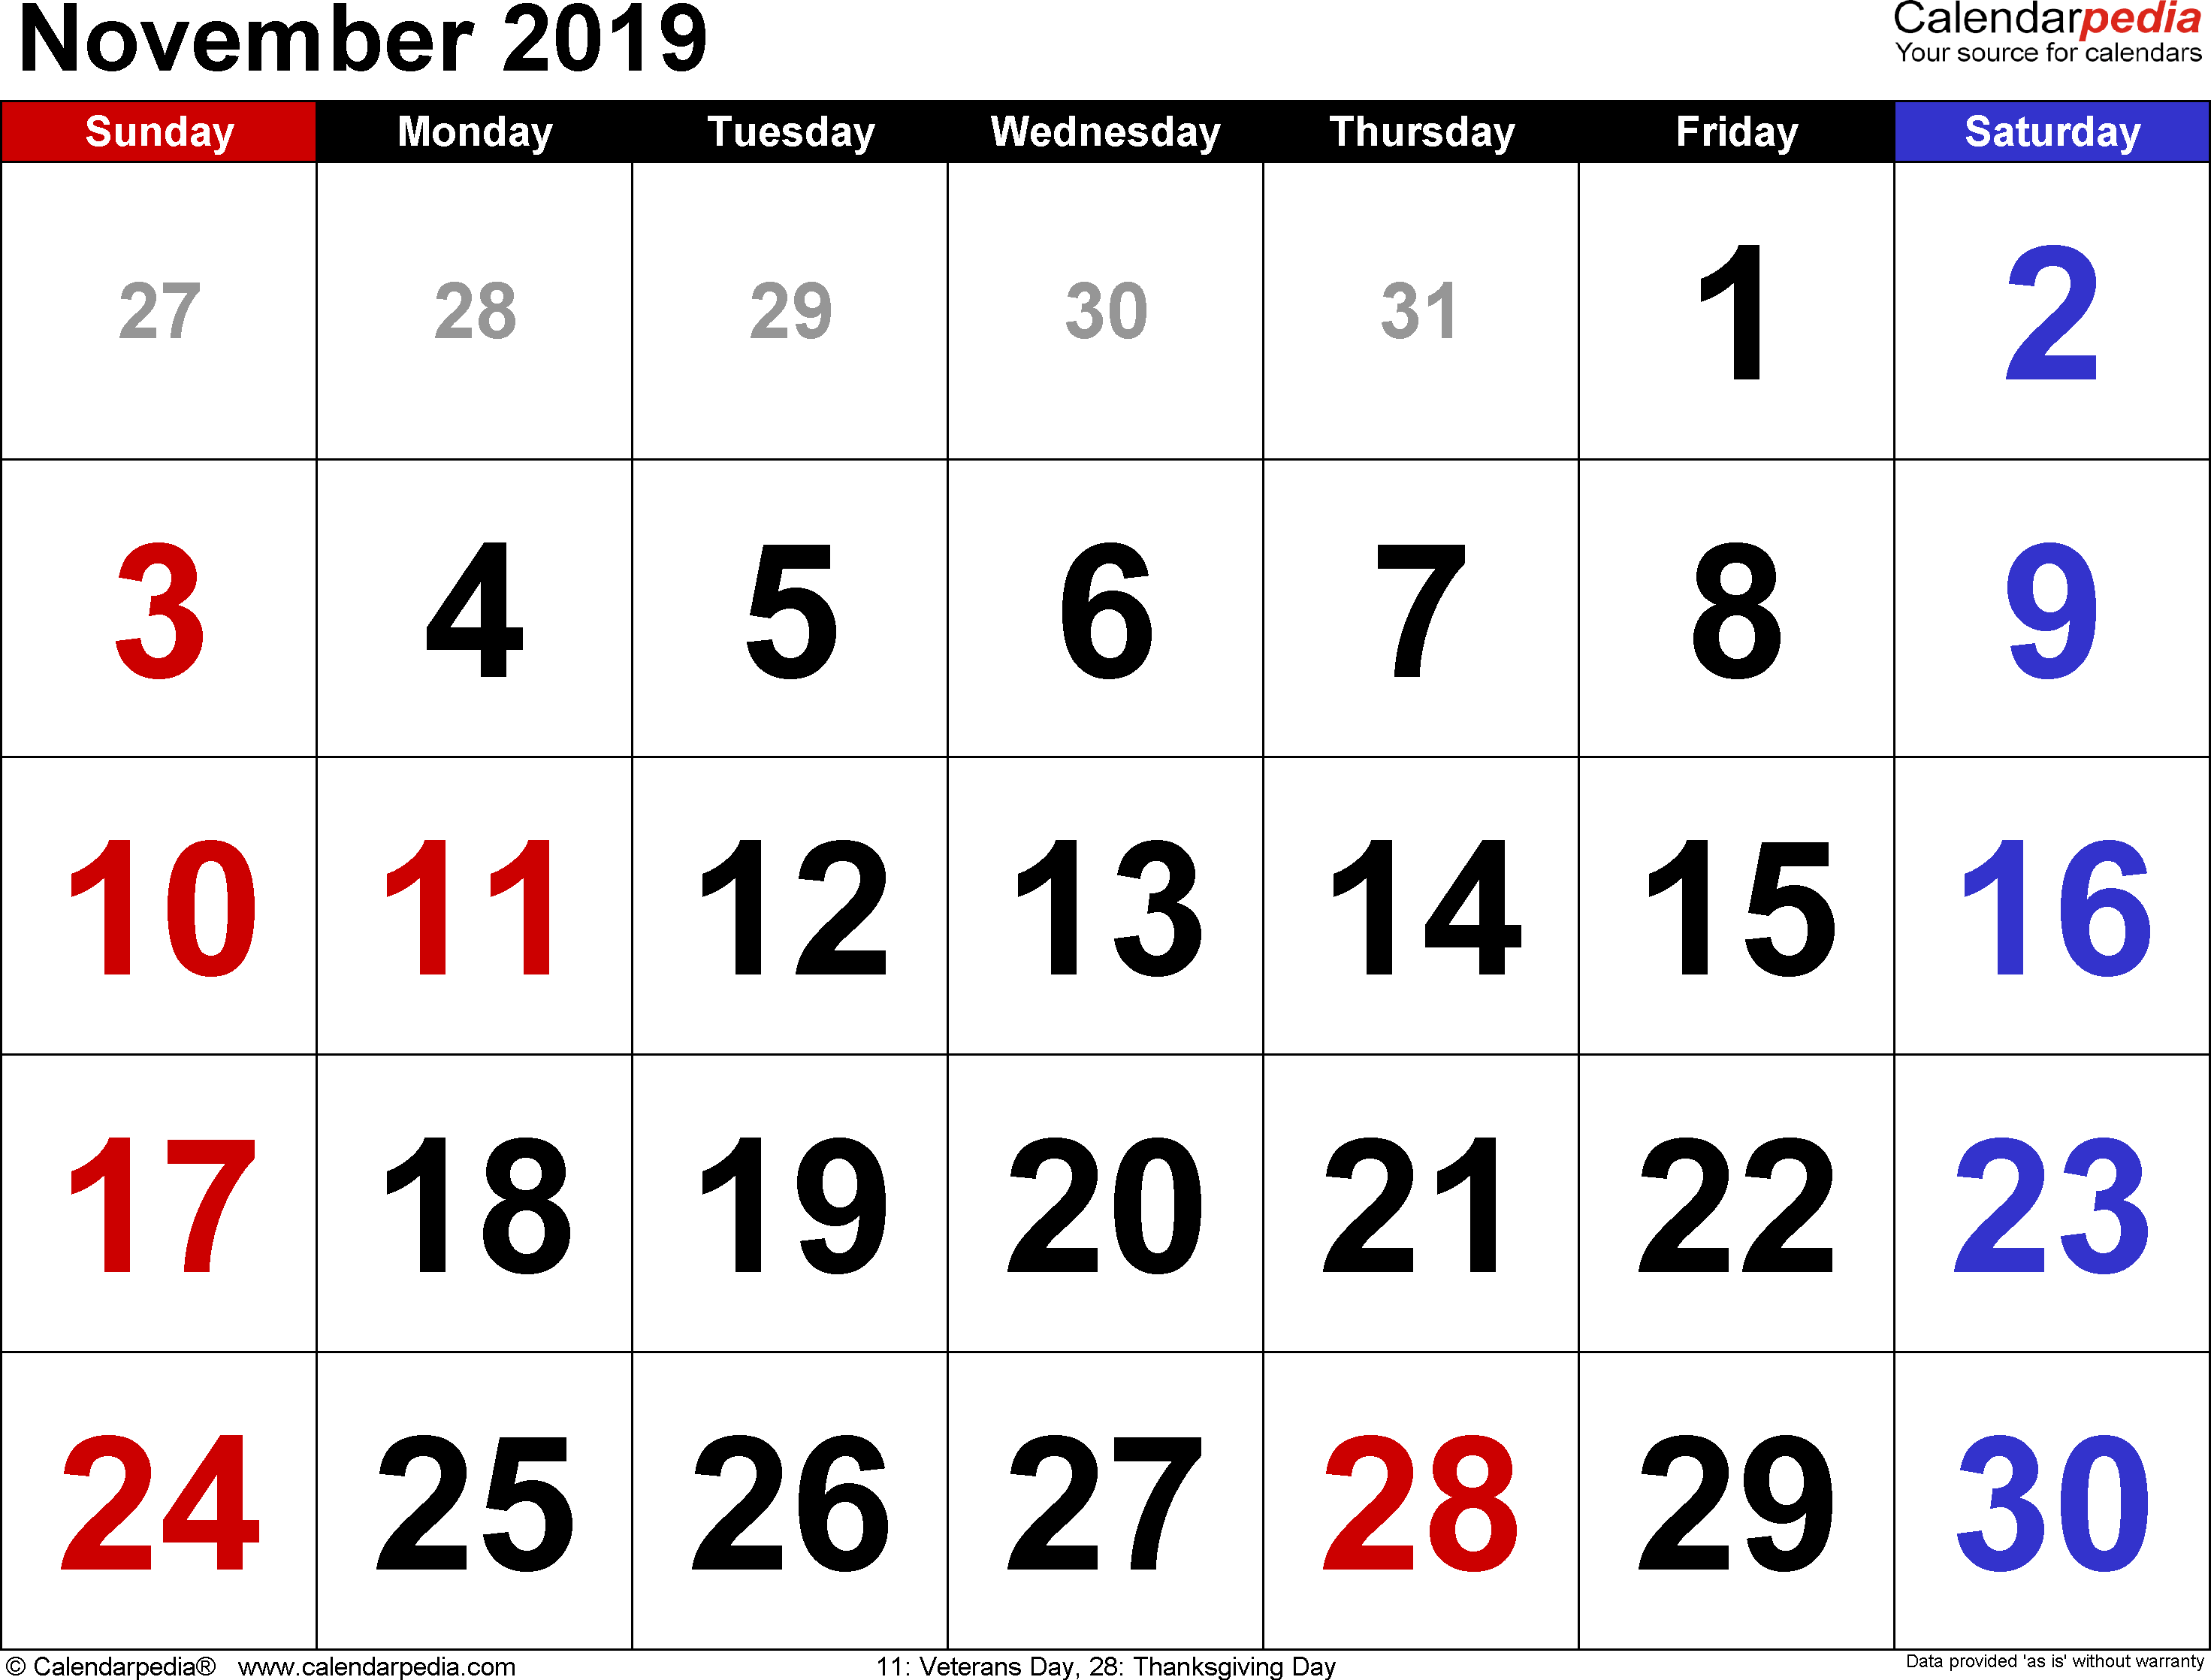 November 2019 calendar, landscape orientation, large numerals, available as printable templates for Word, Excel and PDF